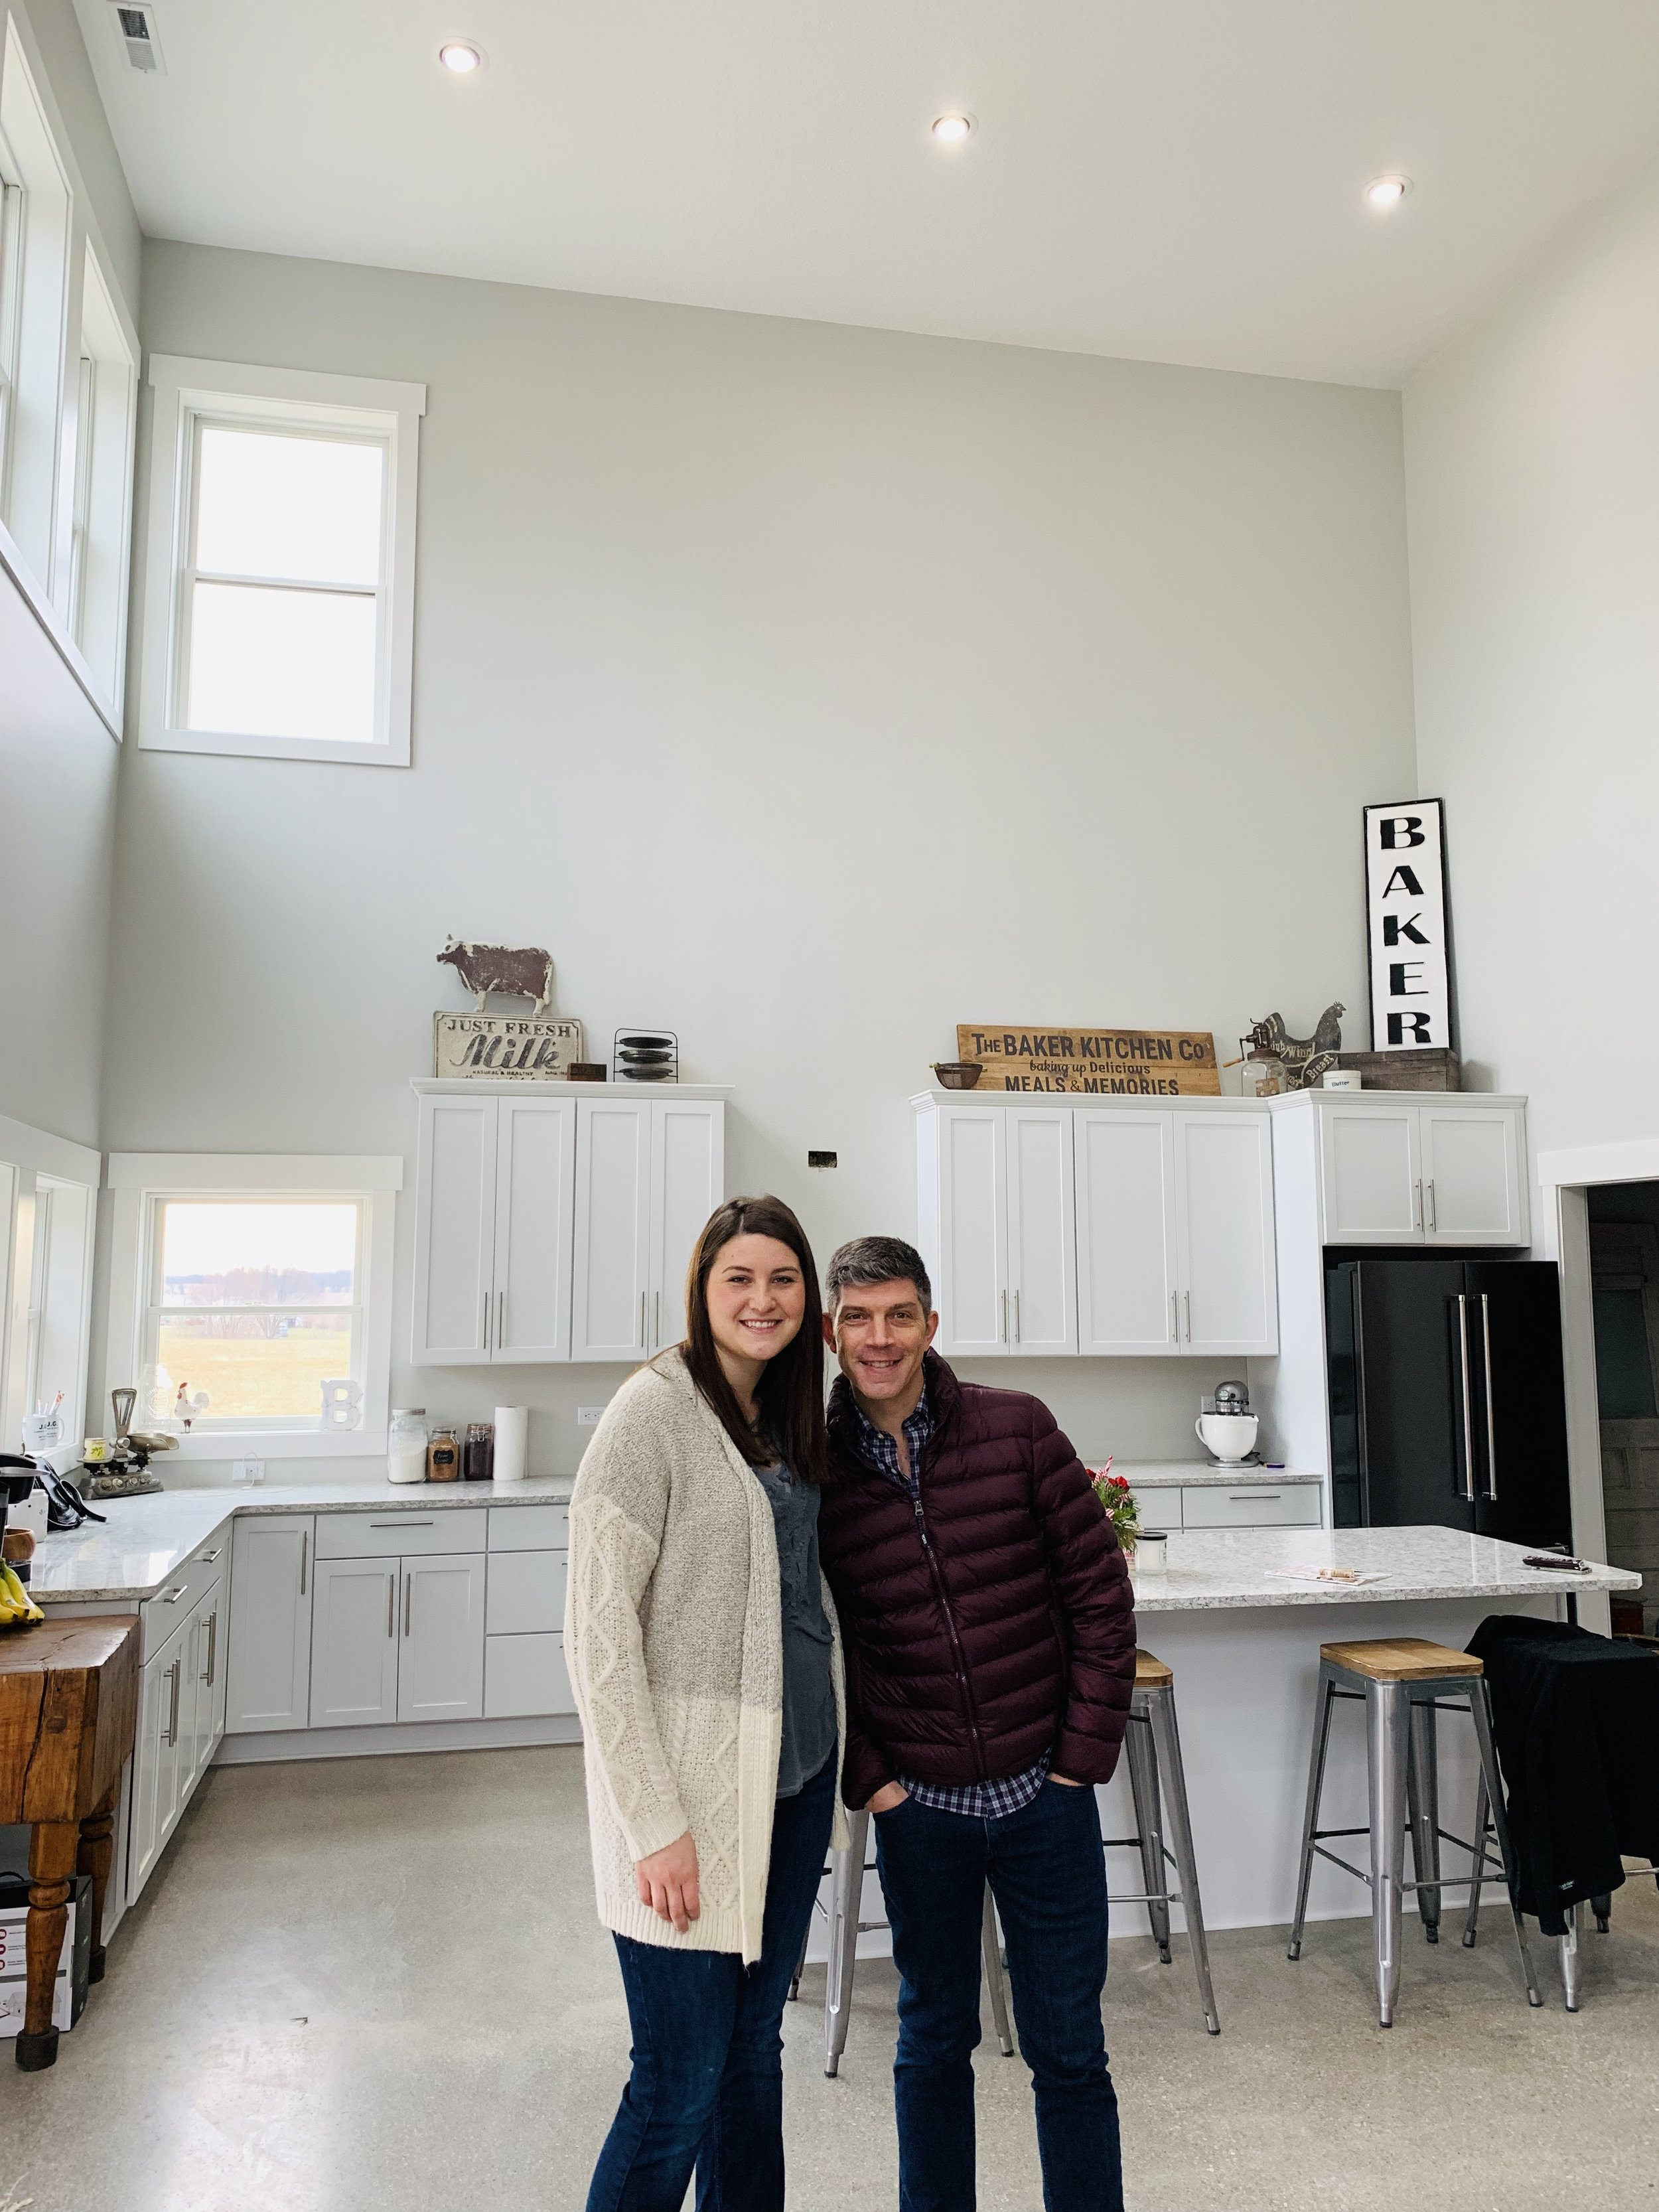 Niece Taylor and John in the kitchen of her NEW HOME!